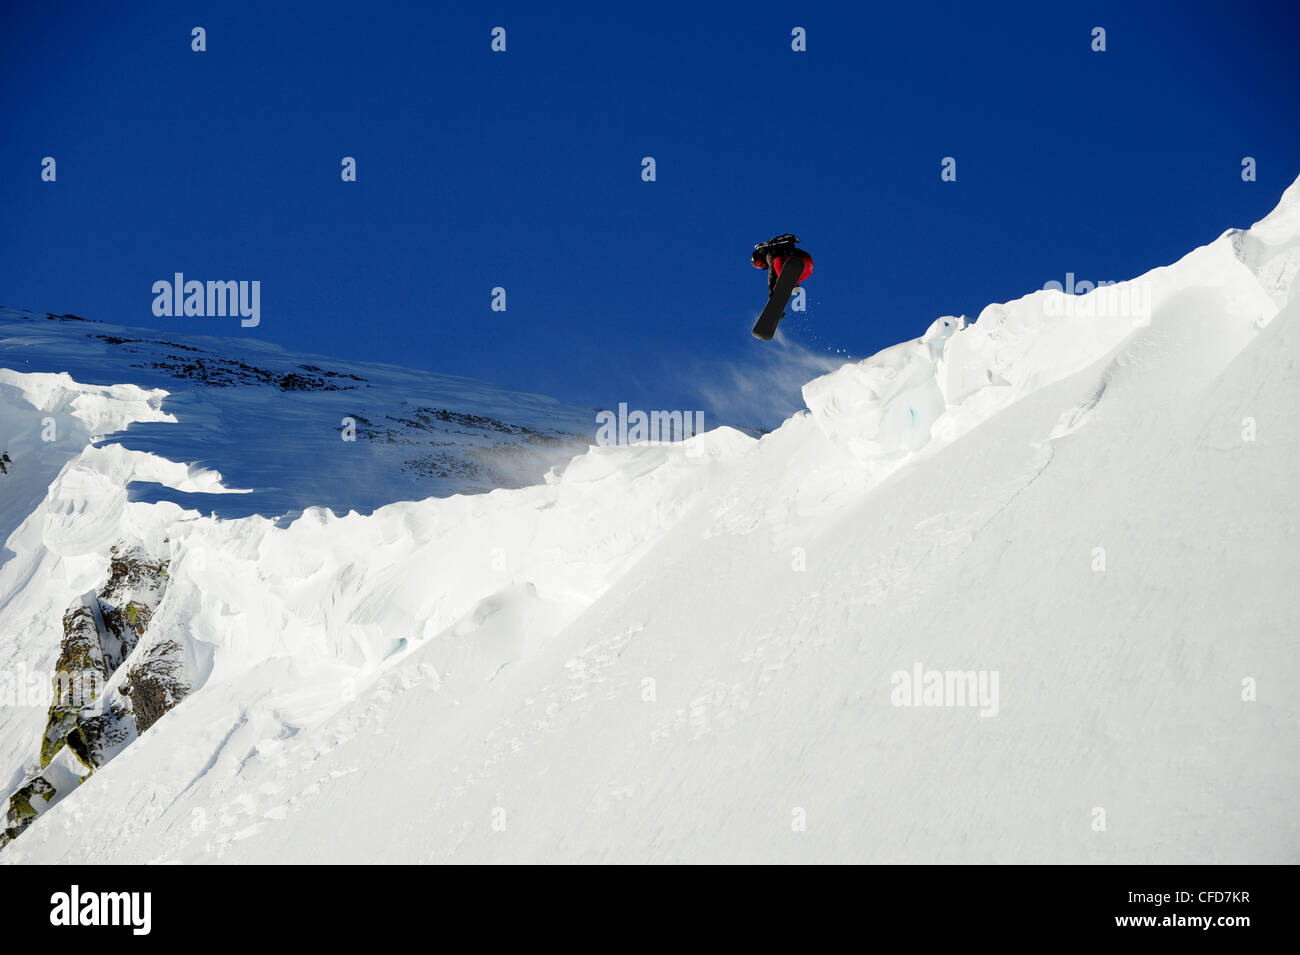 A snowboarder catches air off a cornice in the Lake Tahoe backcountry, California. - Stock Image